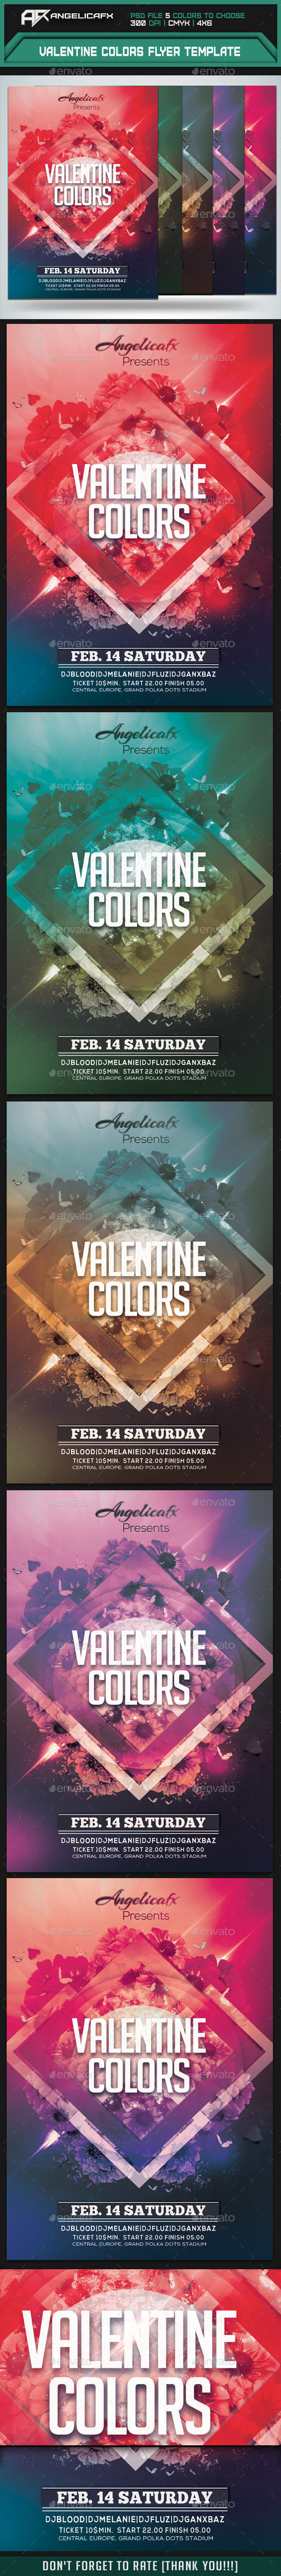 GraphicRiver Valentine Colors Flyer Template 10135906